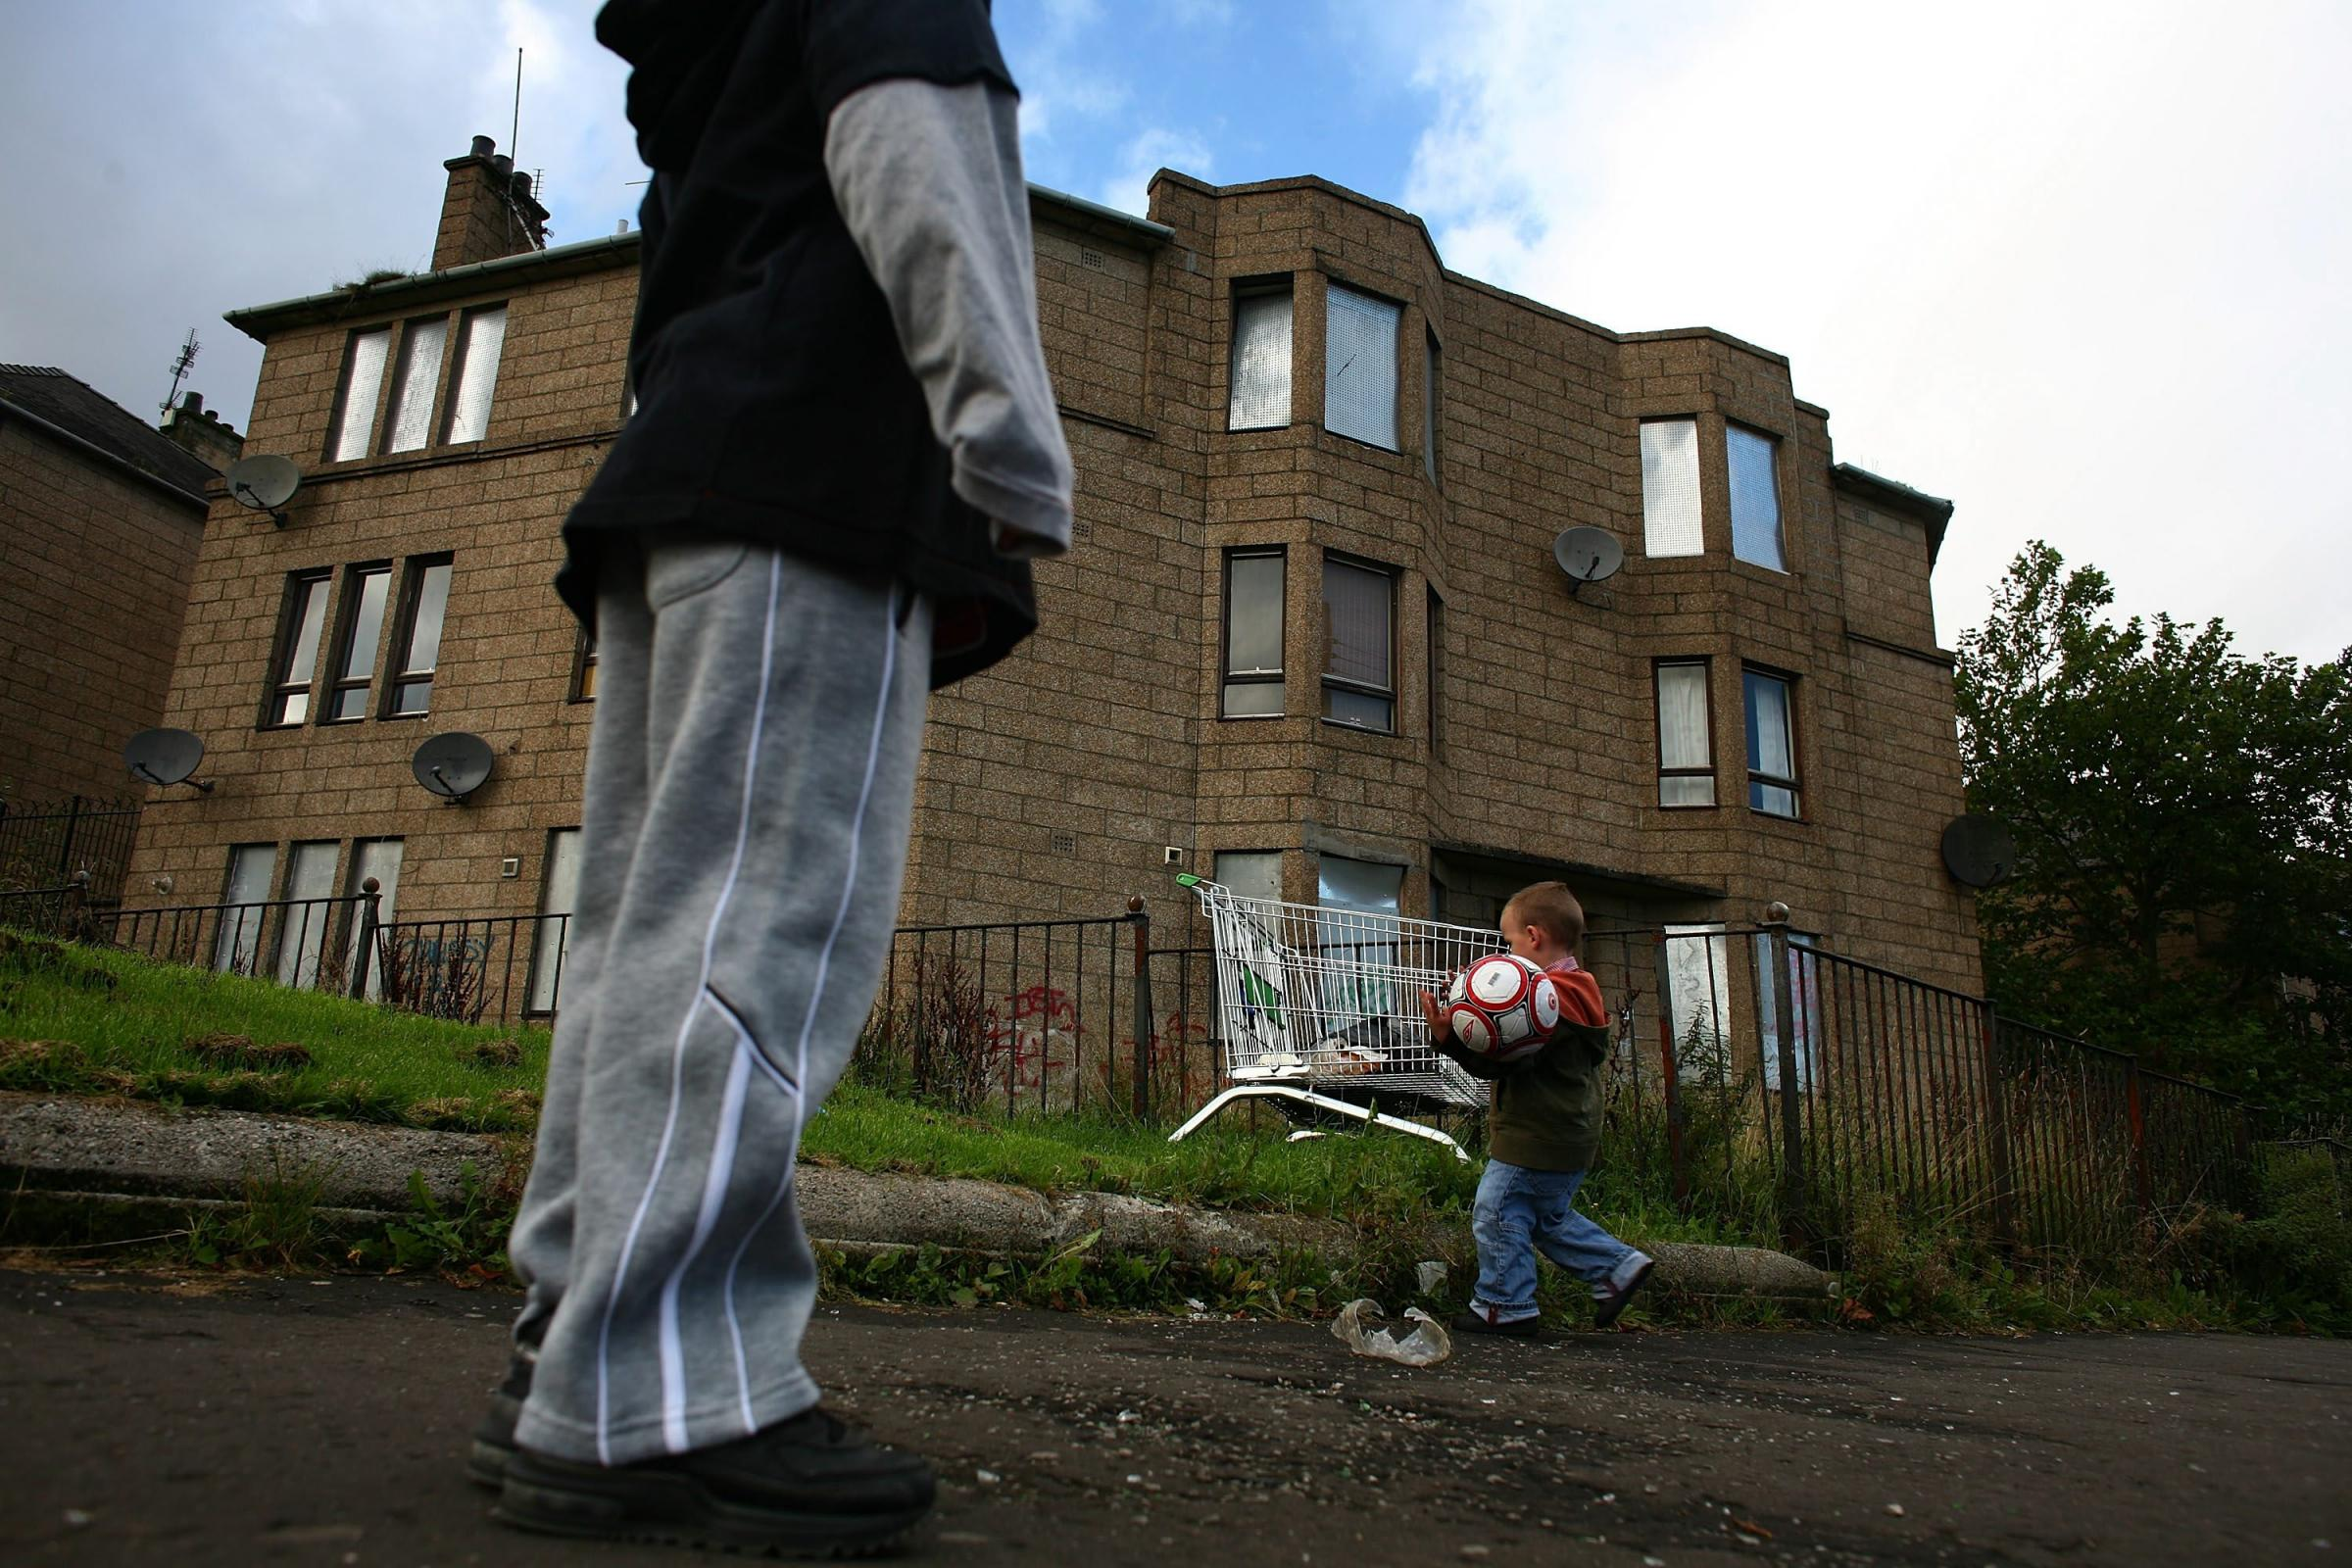 There are concerns that poverty levels are getting worse on nearly all measures.